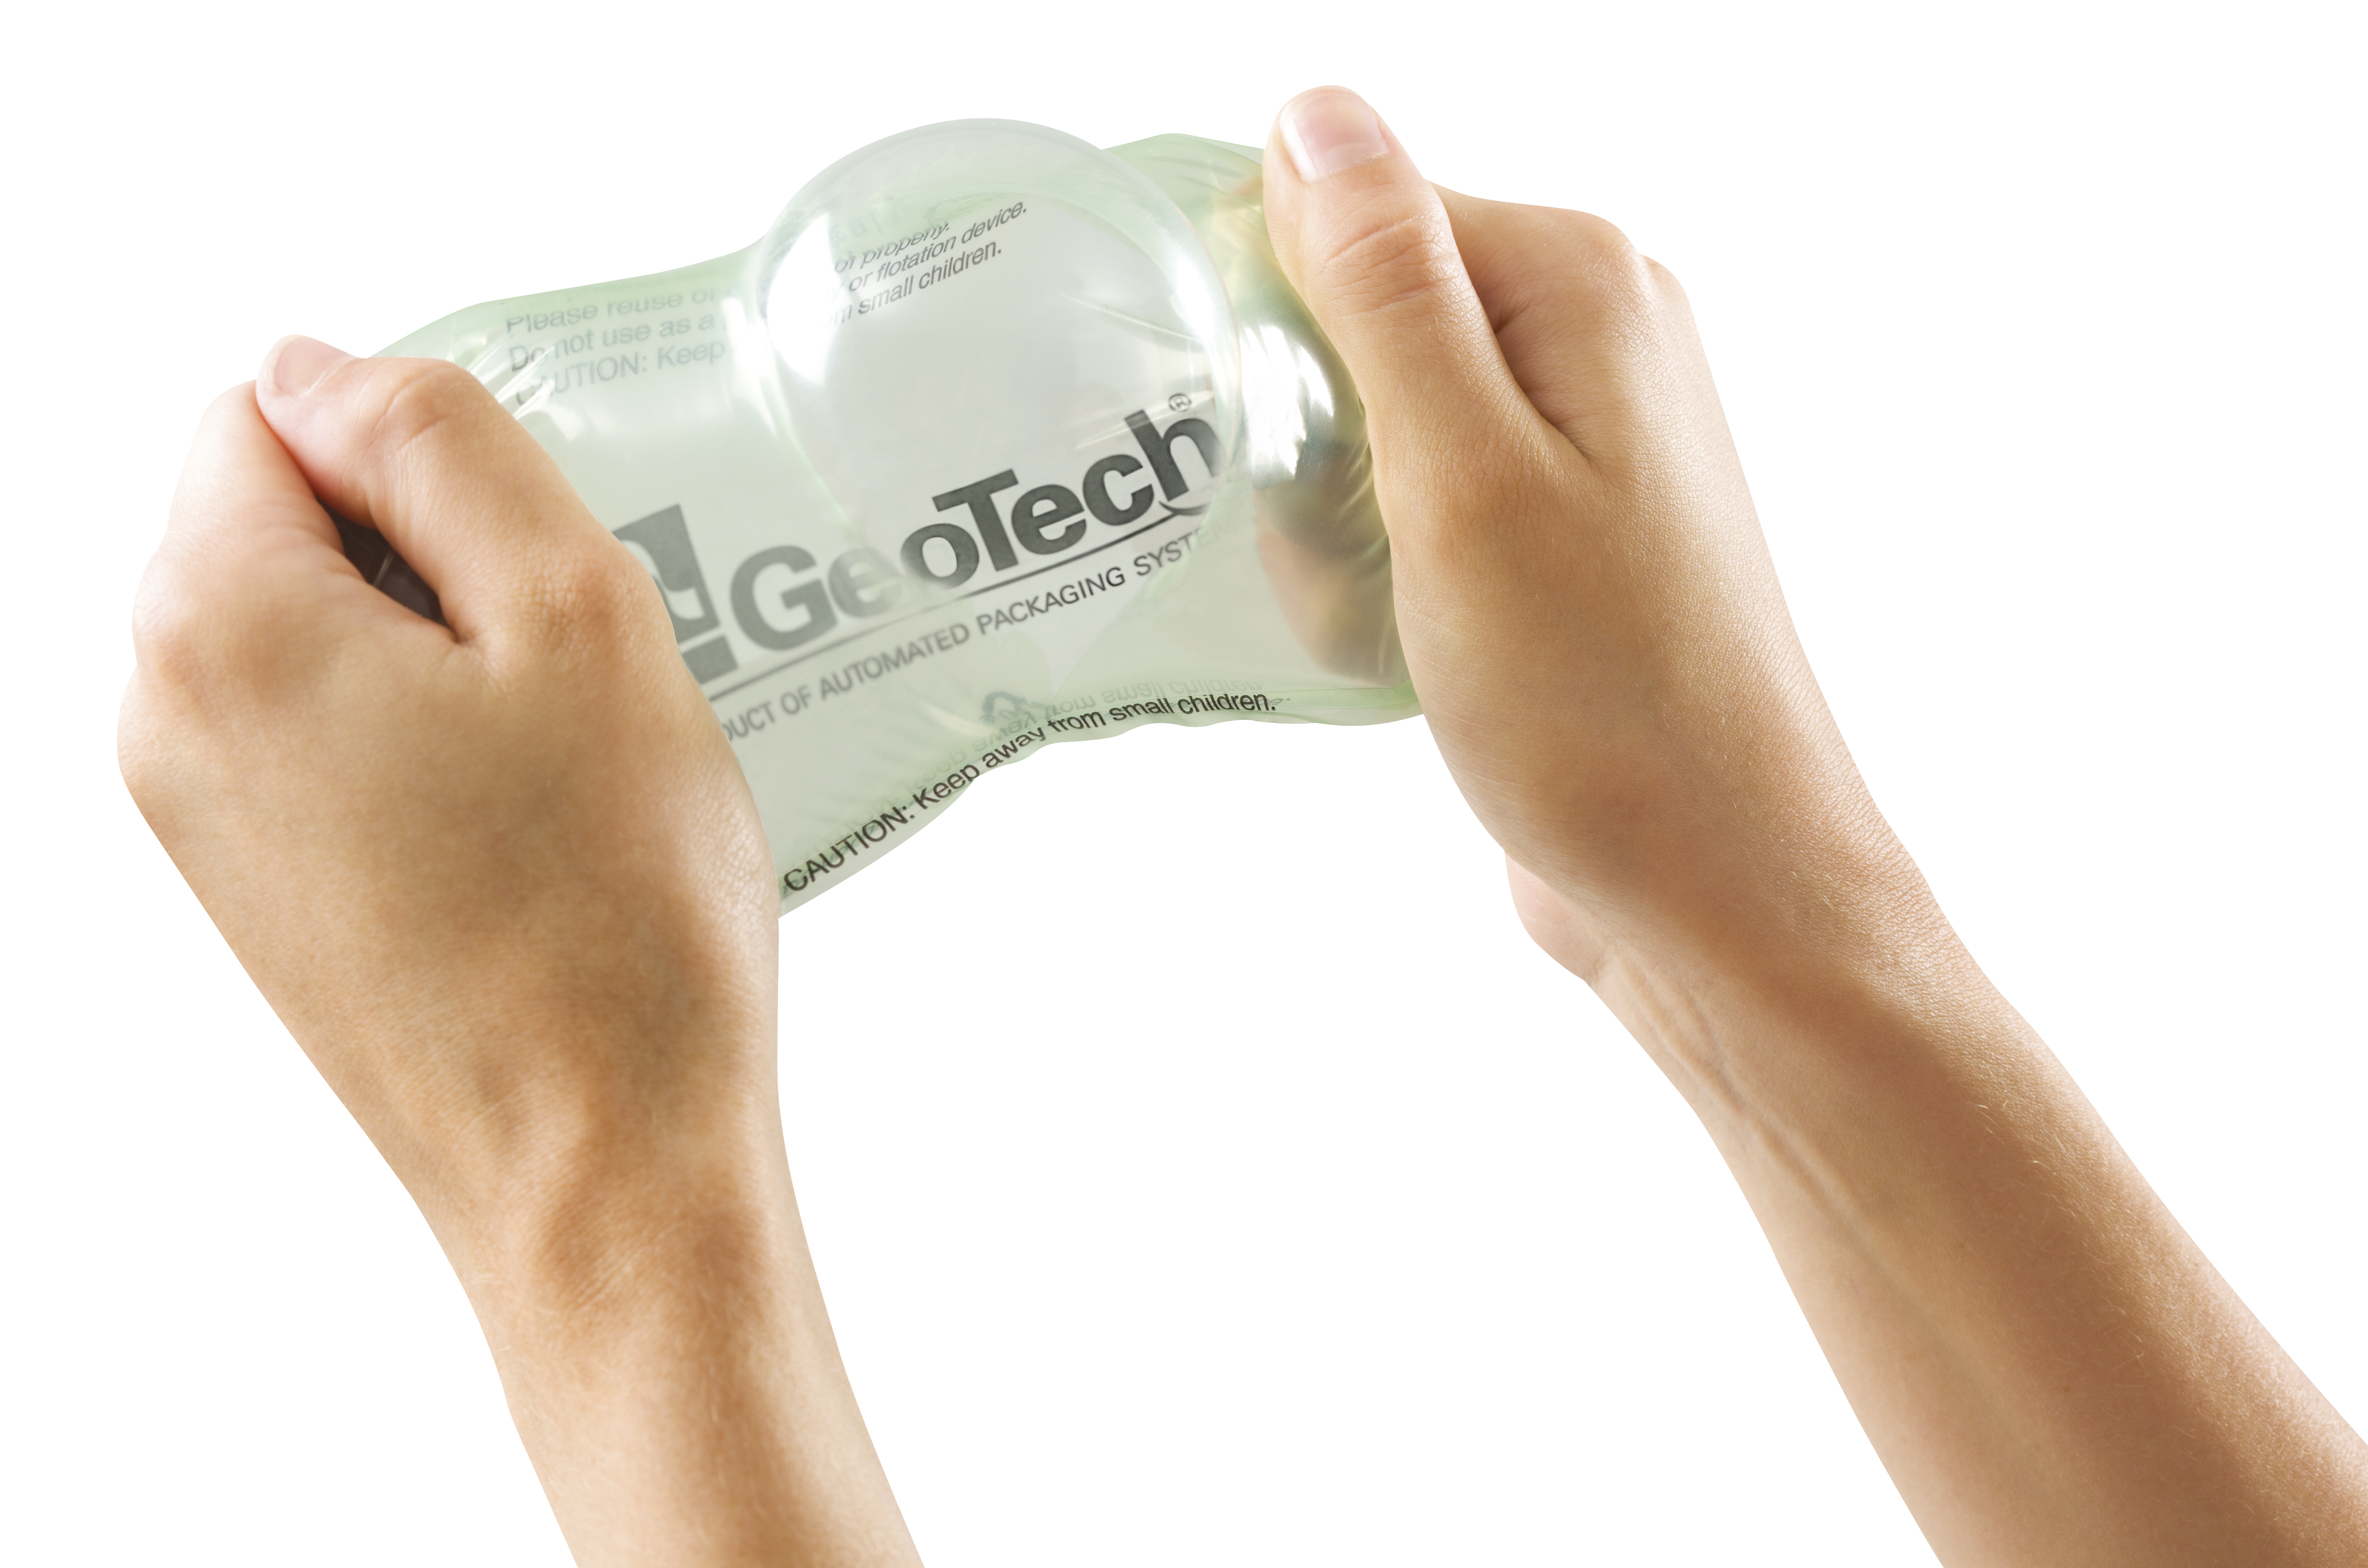 GeoTech Bio Air Pillow Hand Strength Test